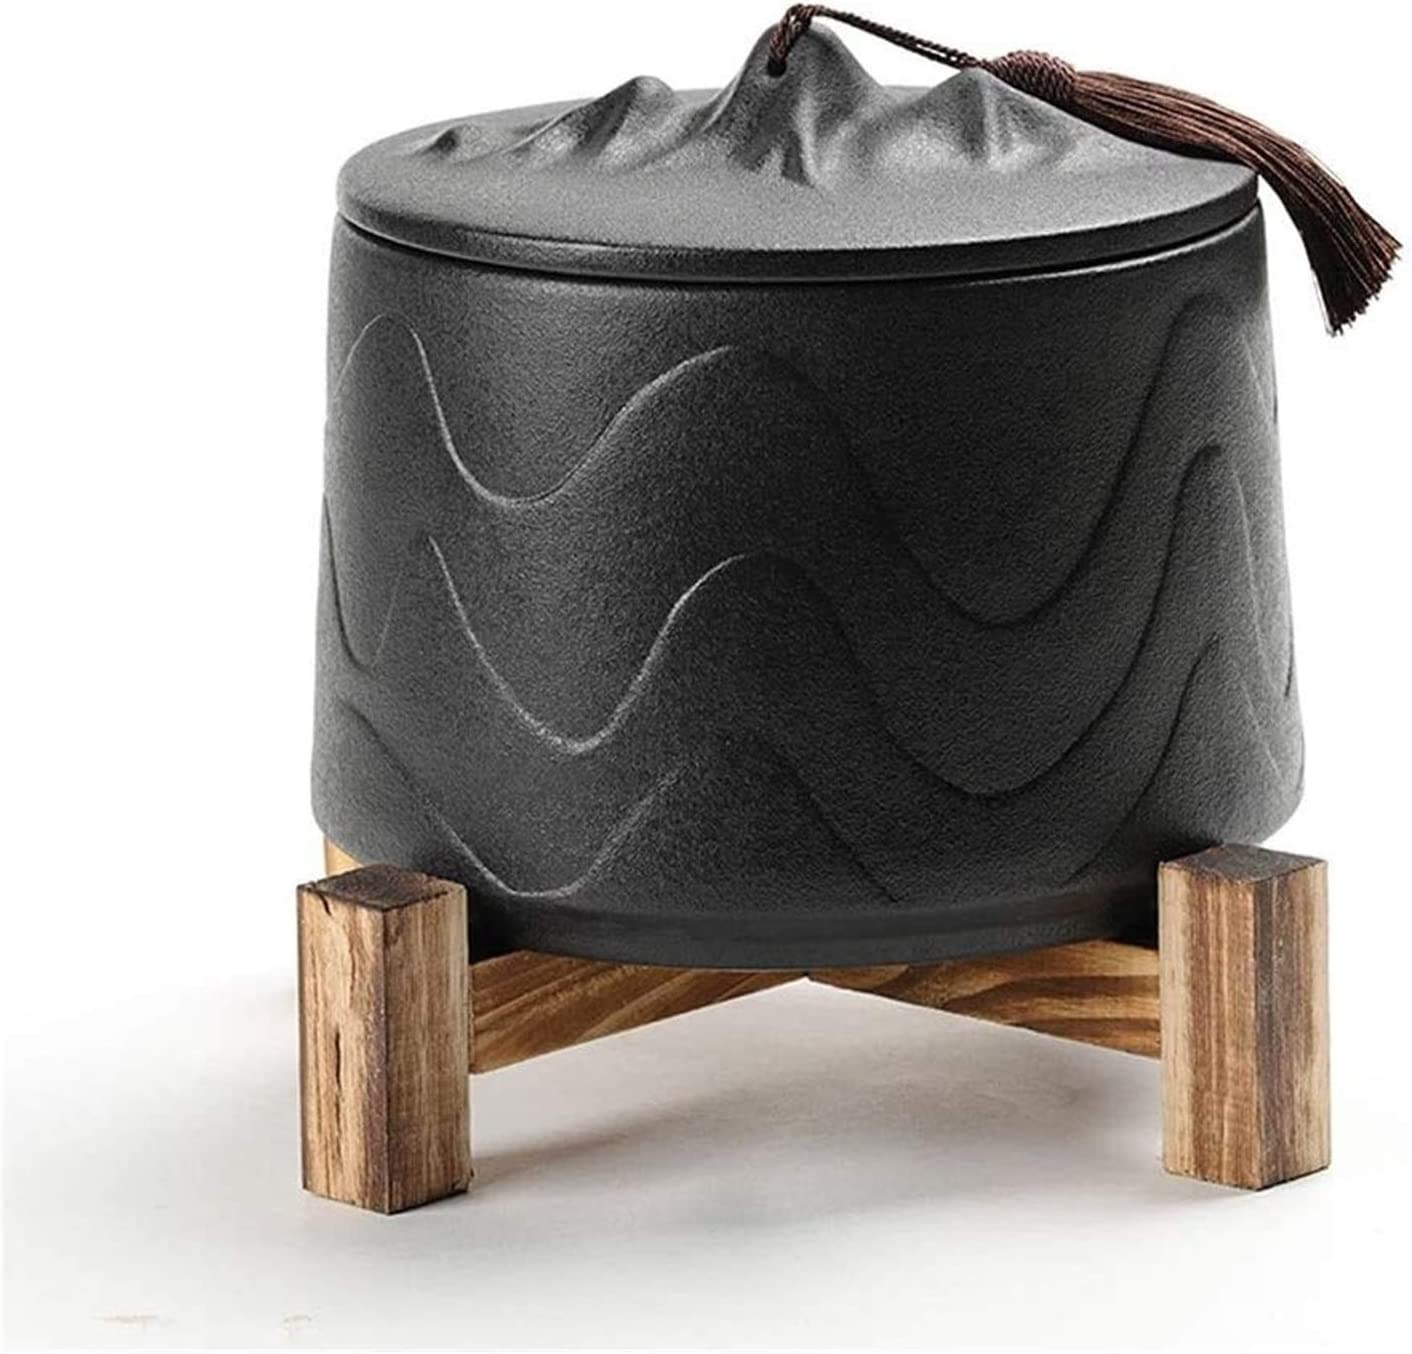 Cremation Urns for Detroit low-pricing Mall Adult Burial Funeral Ashes Decorative